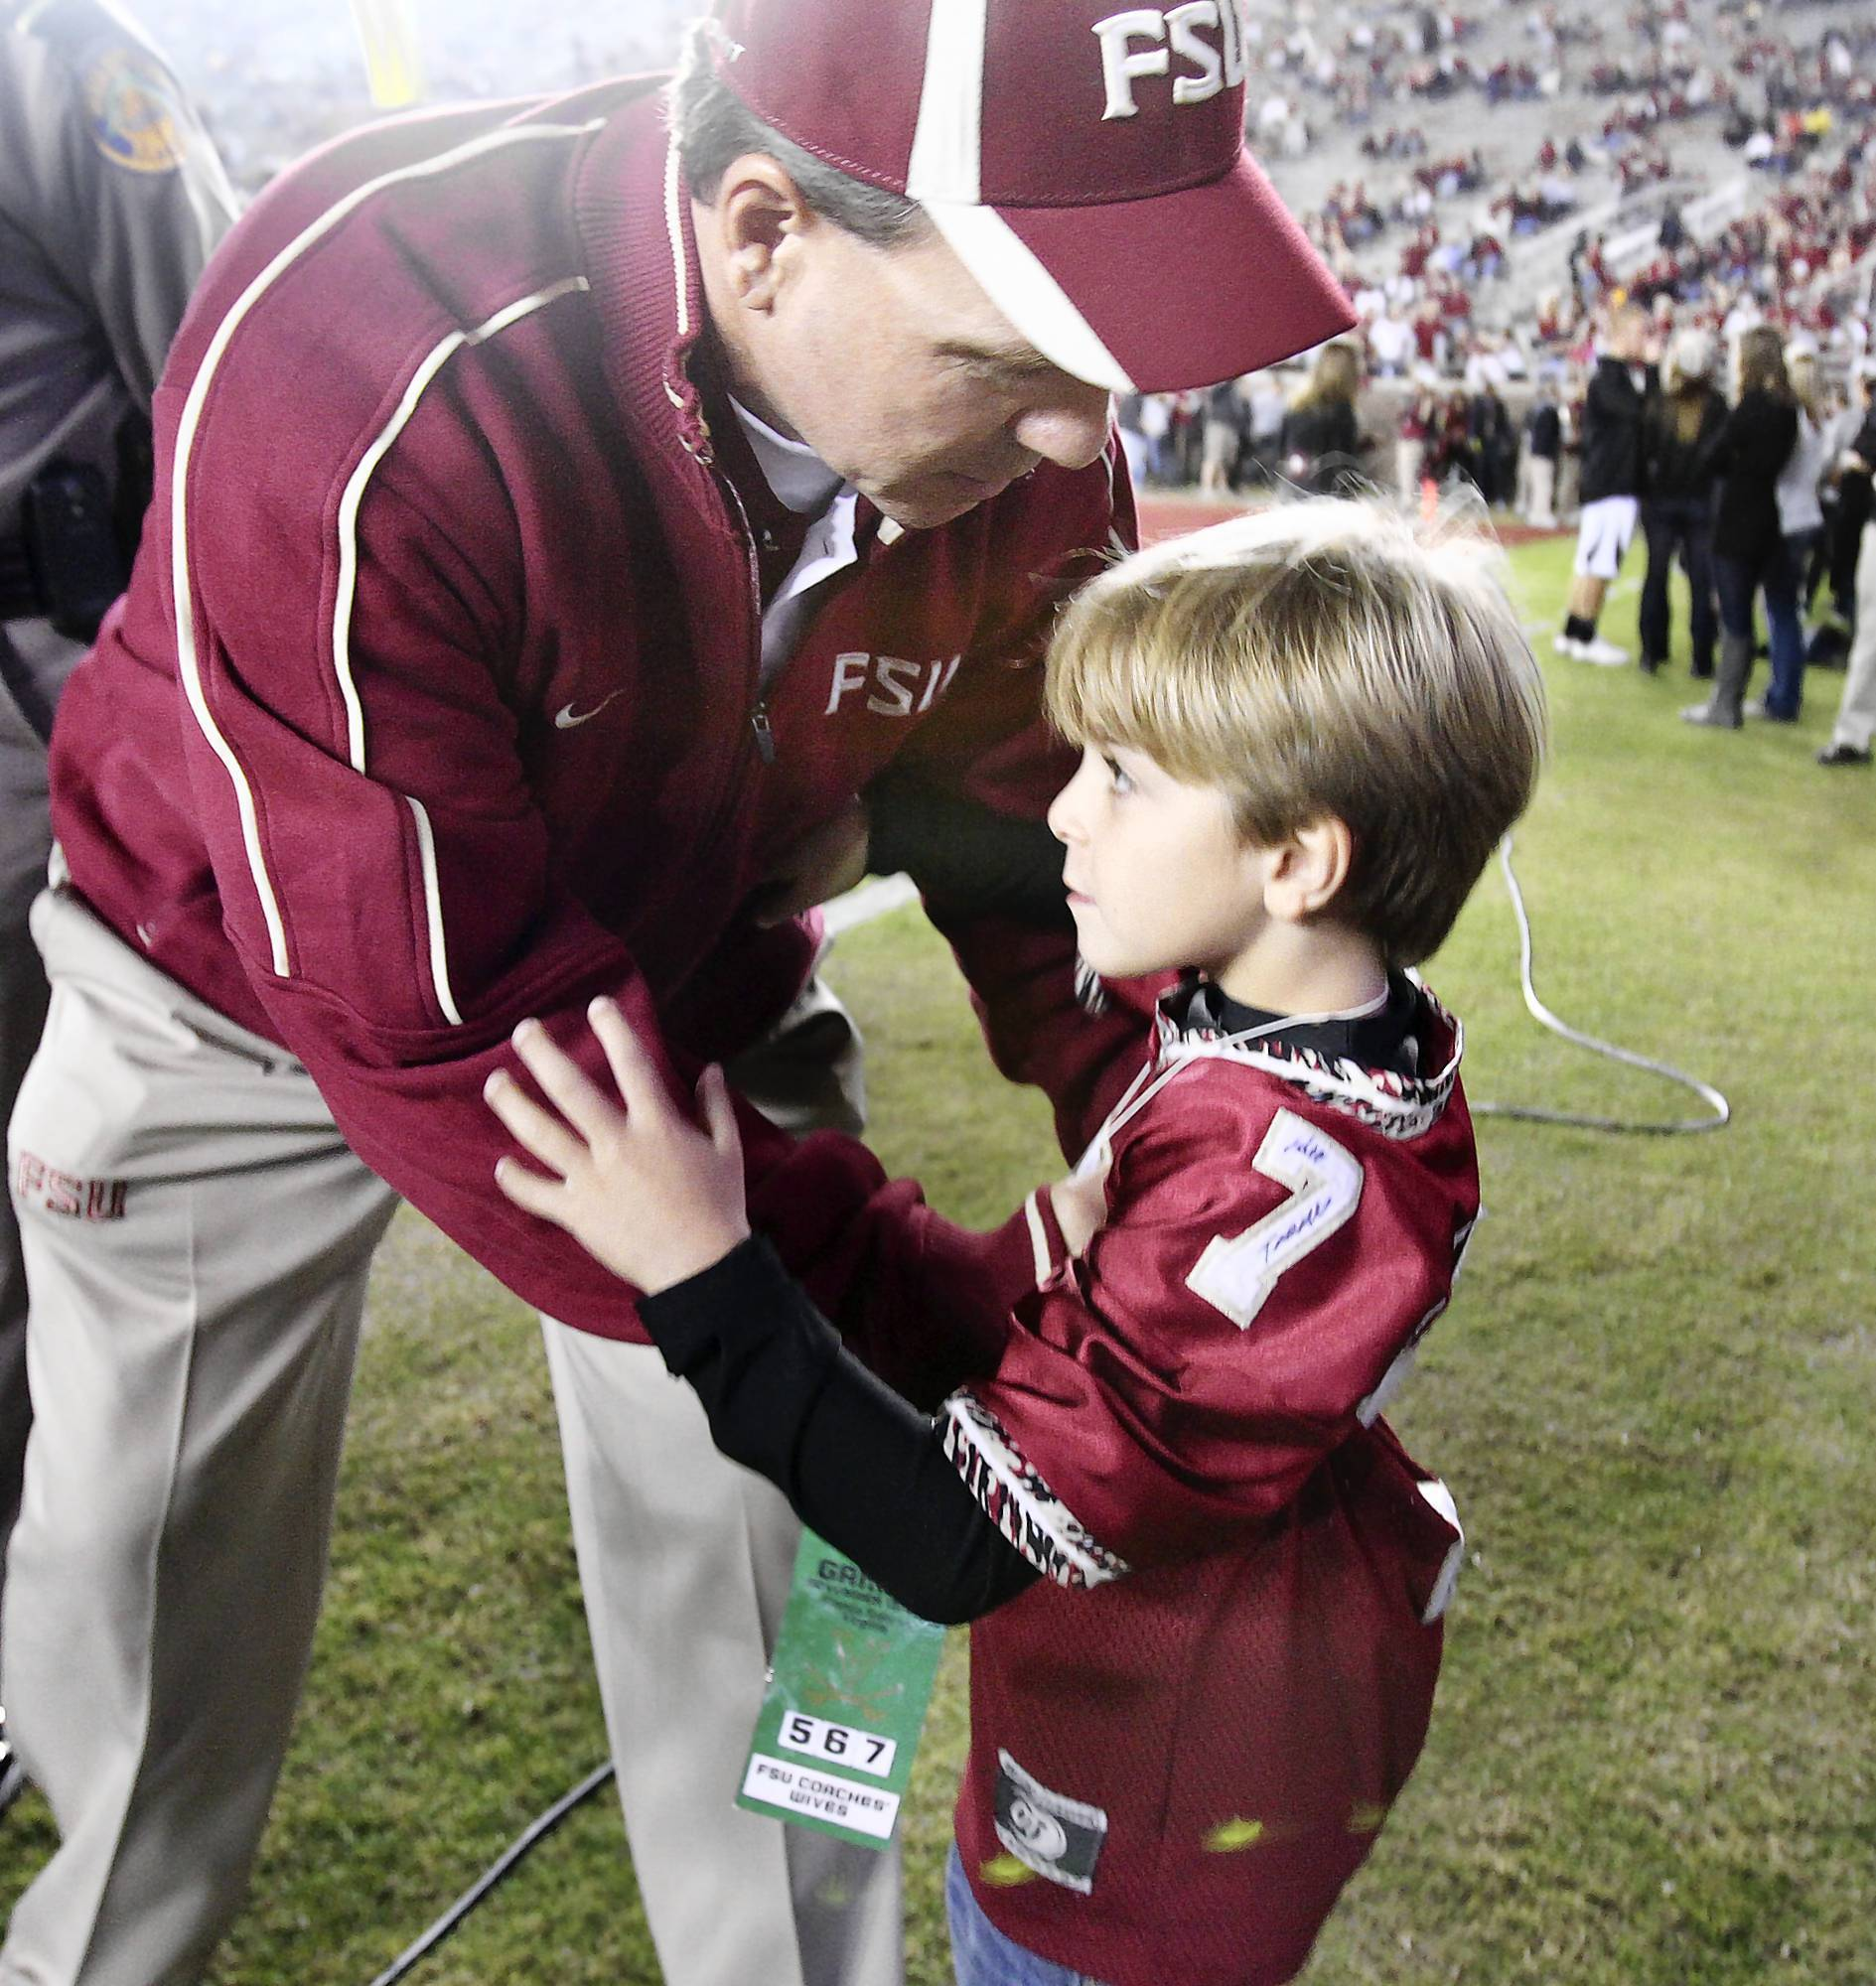 FSU head coach Jimbo Fisher reaches to hug his son, Ethan, on the field before the start of the Virginia at Florida State game in Tallahassee in November. (Stephen M. Dowell/Orlando Sentinel file)